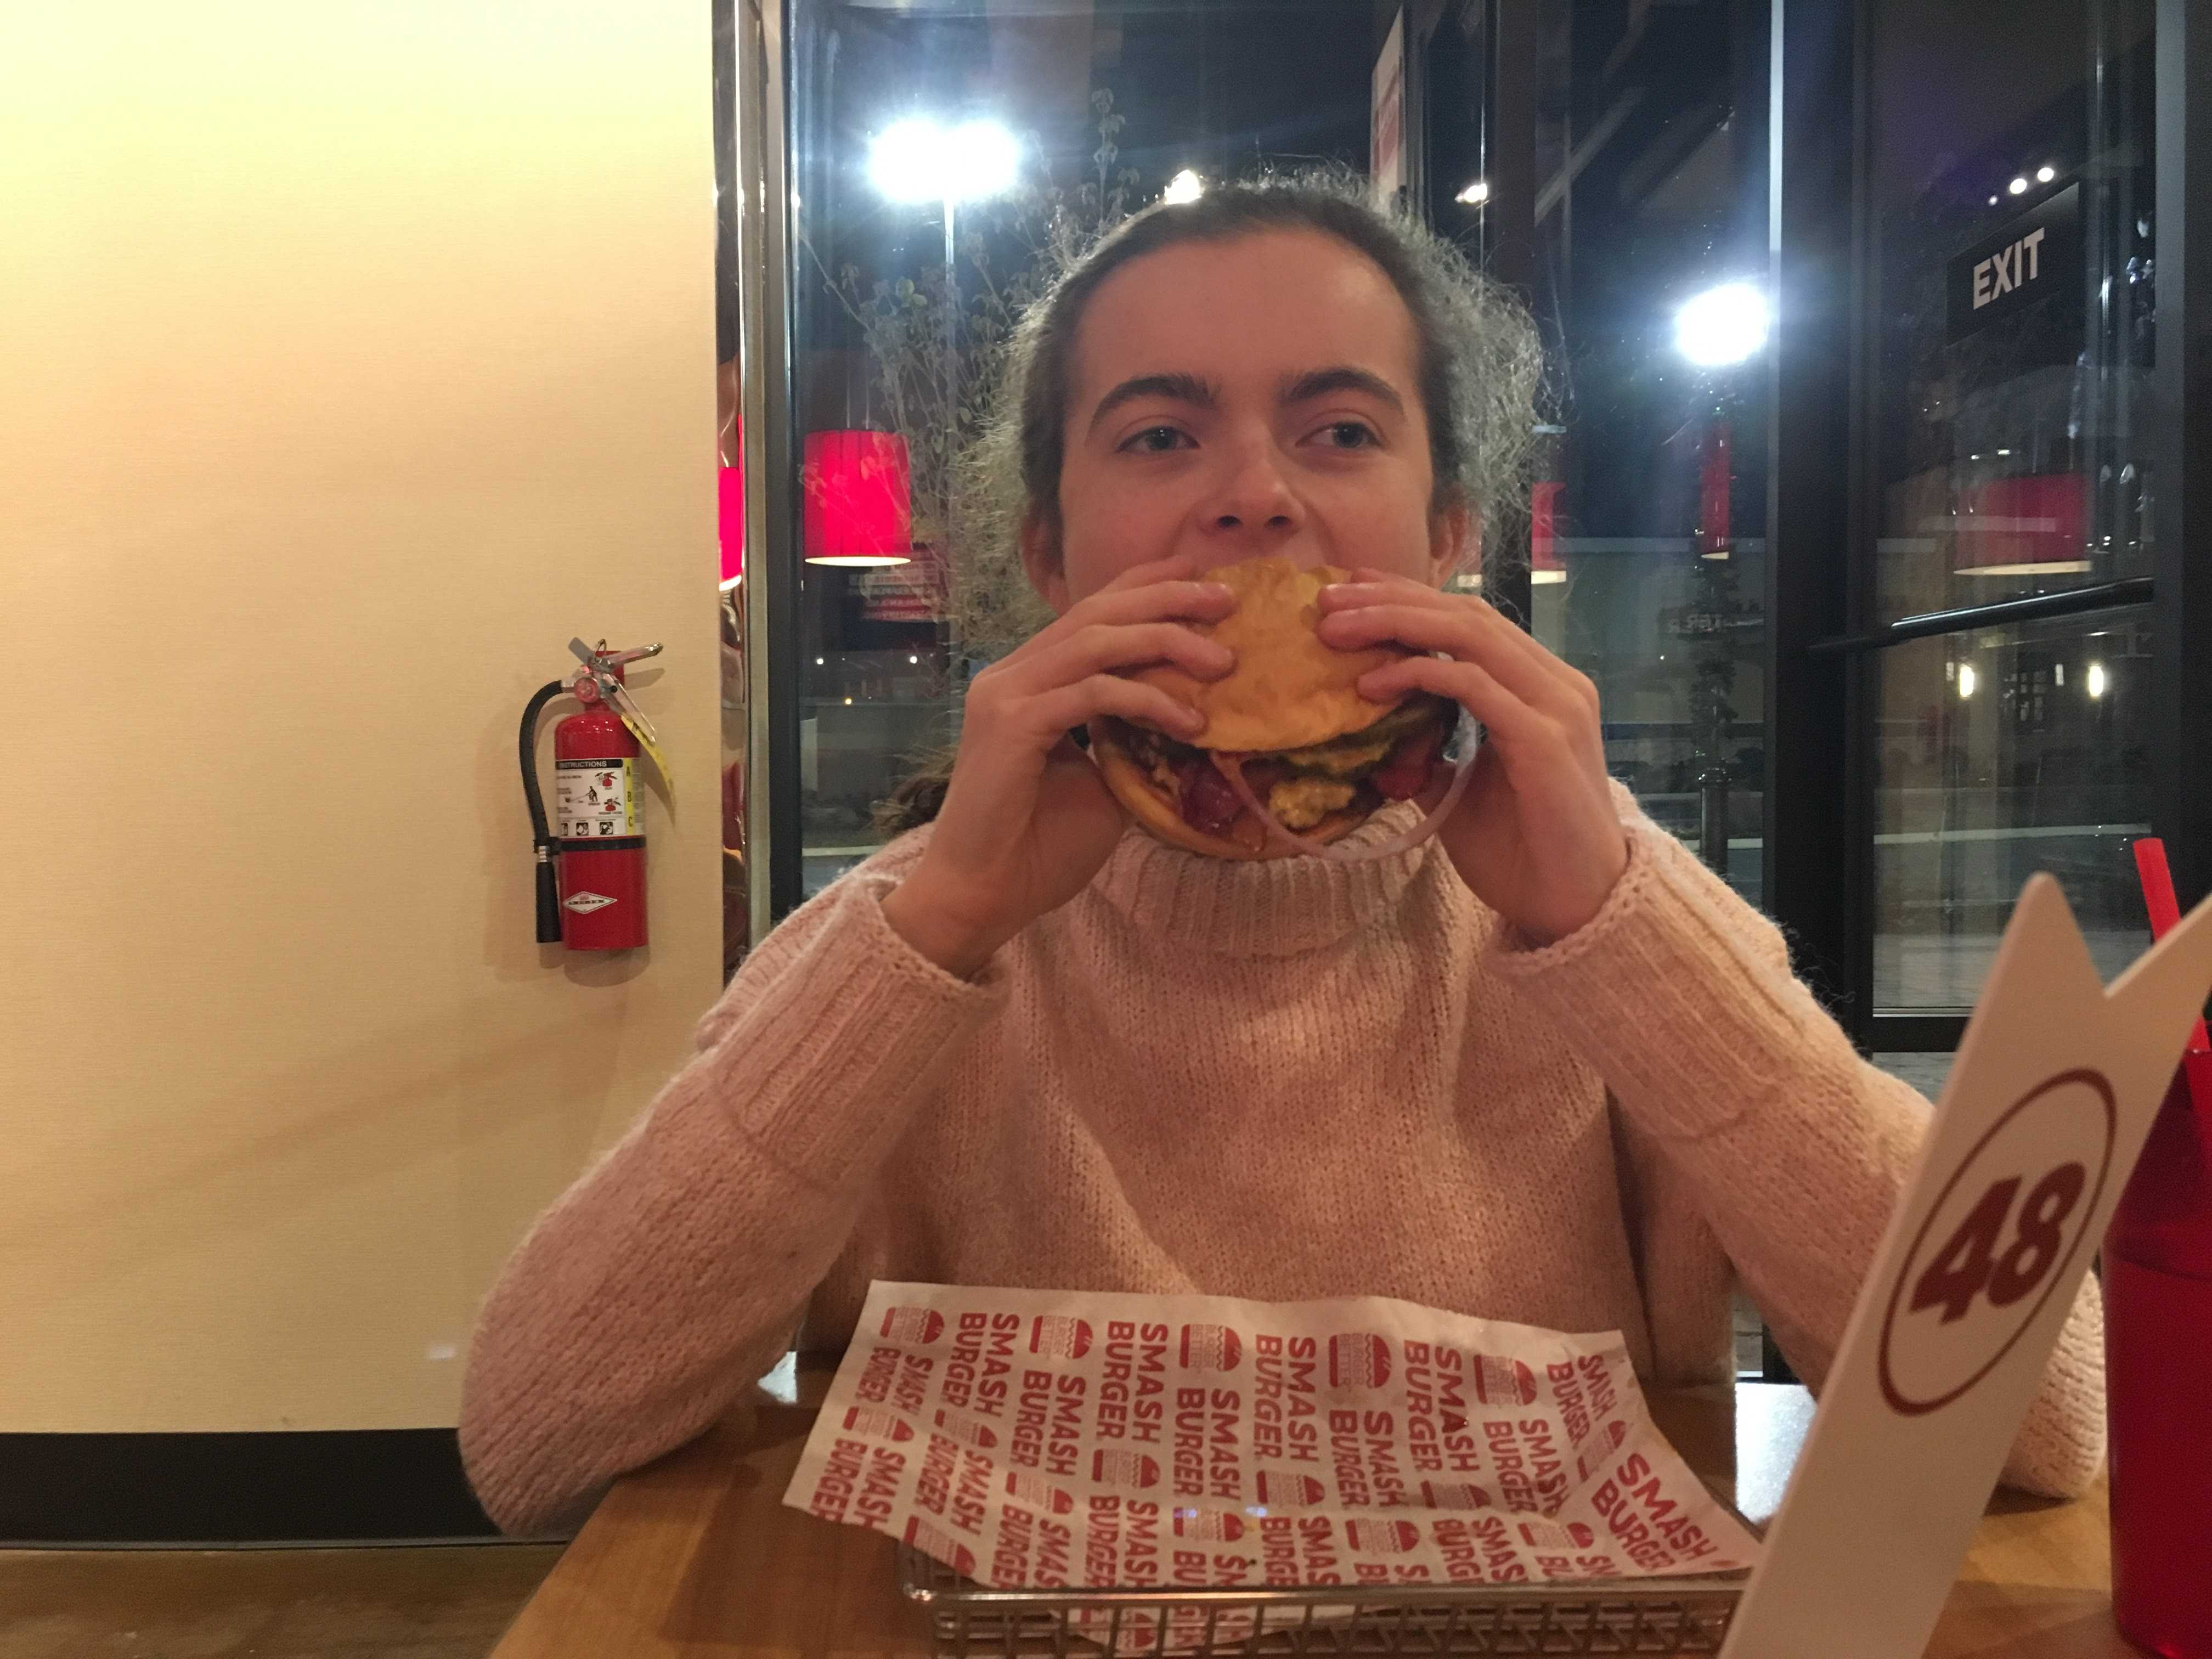 Andrea takes her first bite of her burger.